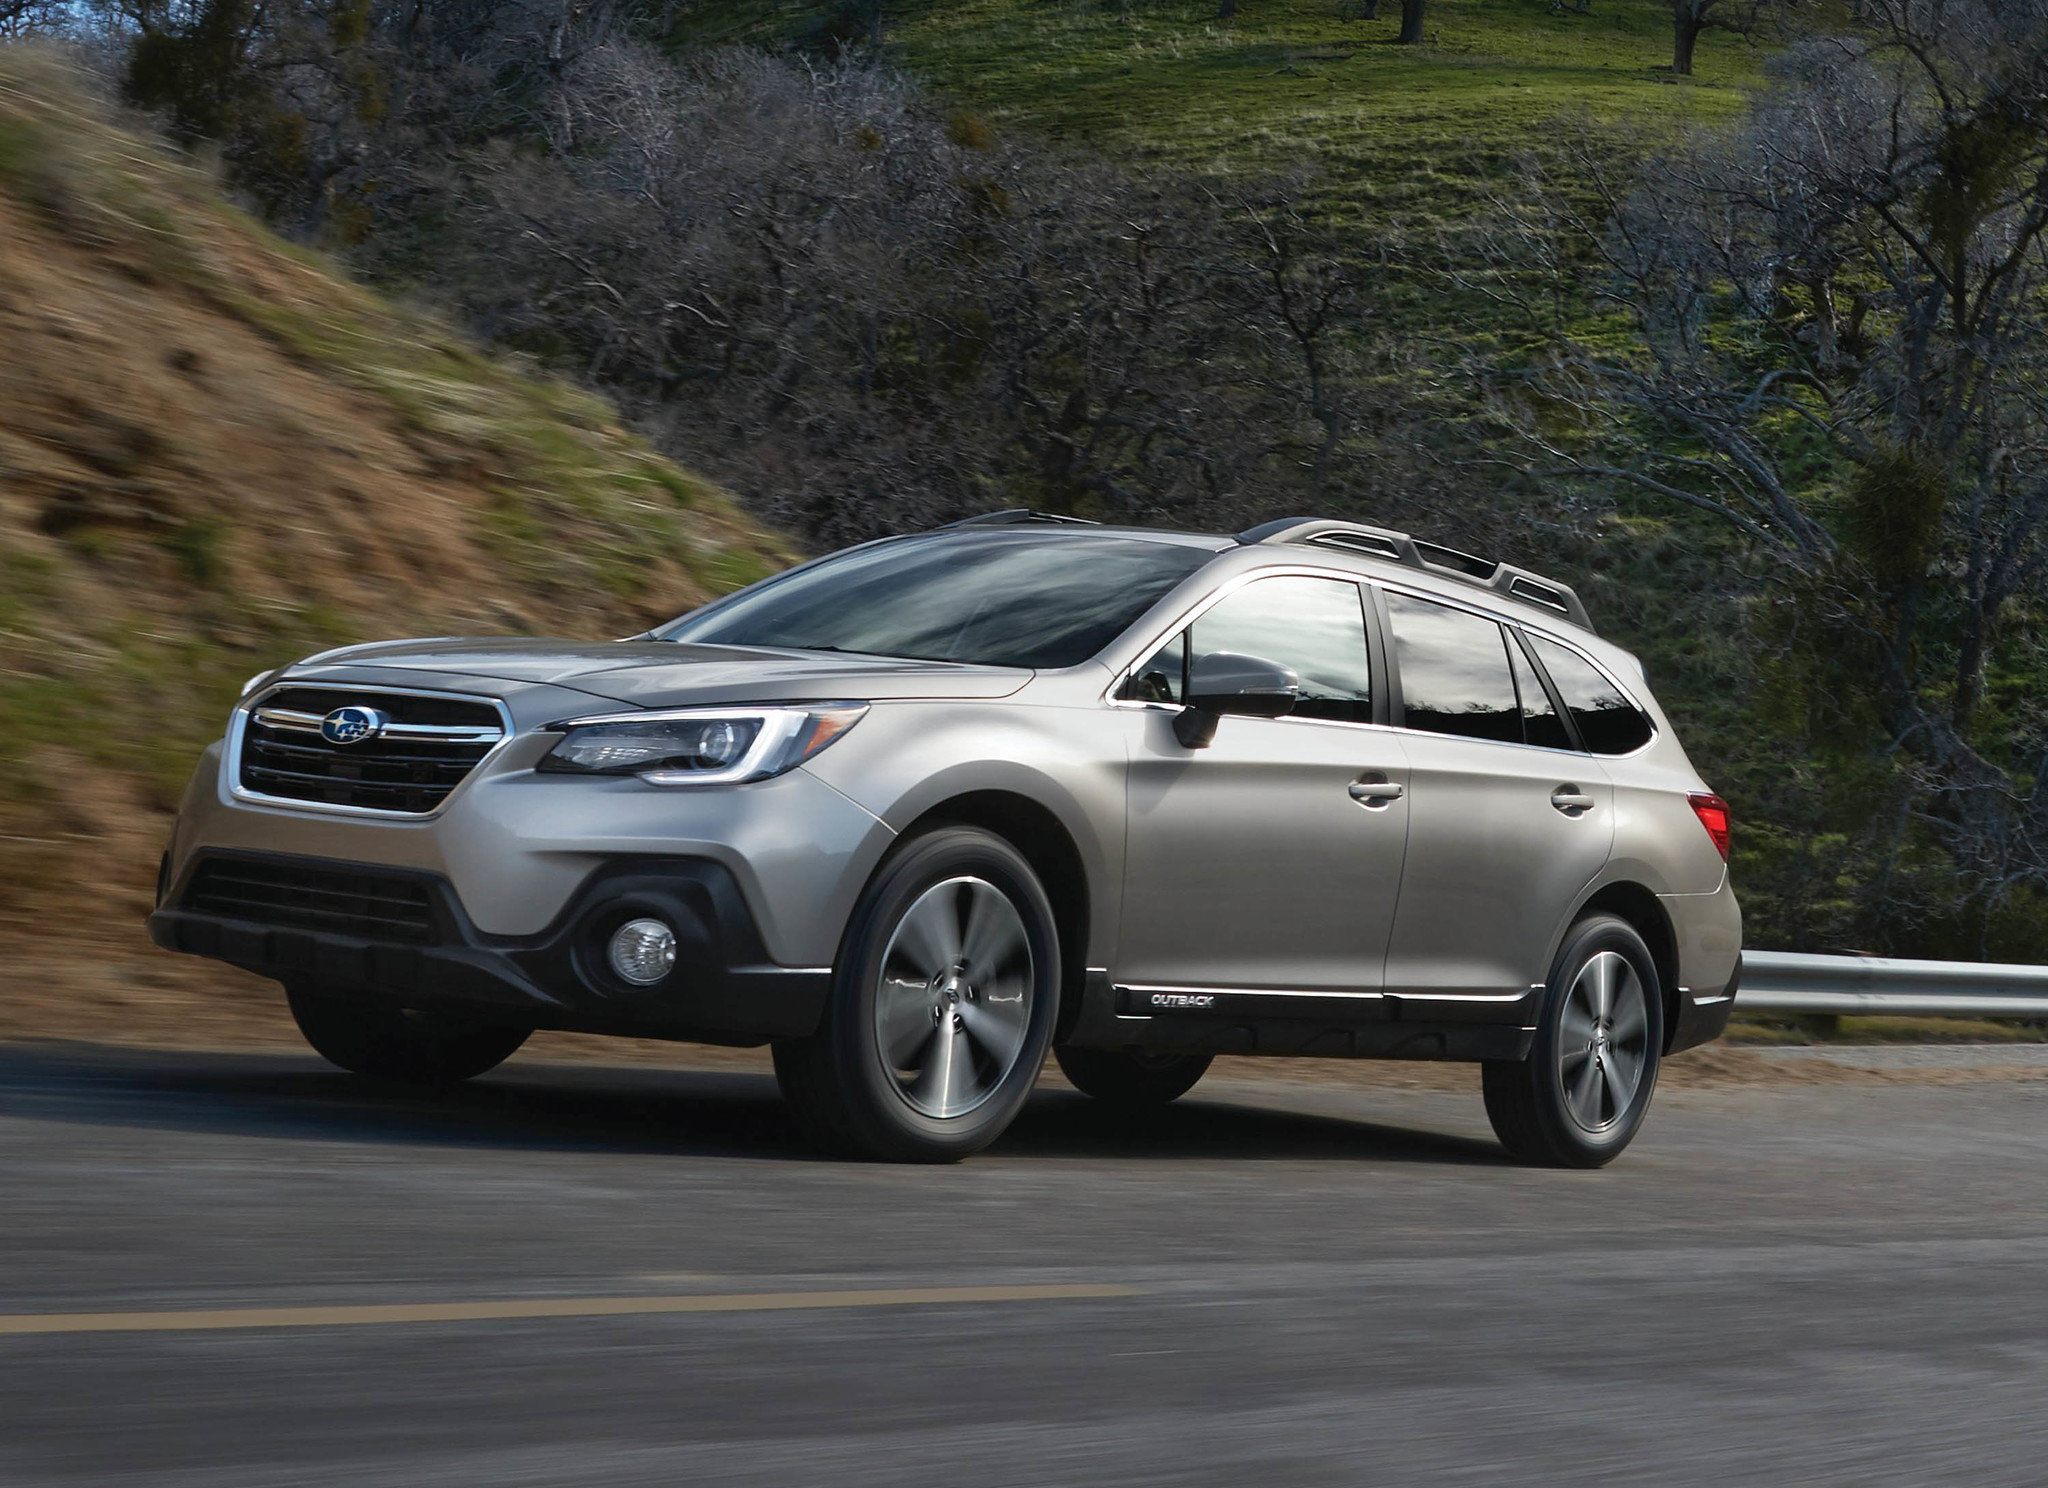 Subaru recalls 400K vehicles in US due to 2 issues that can cause stalling